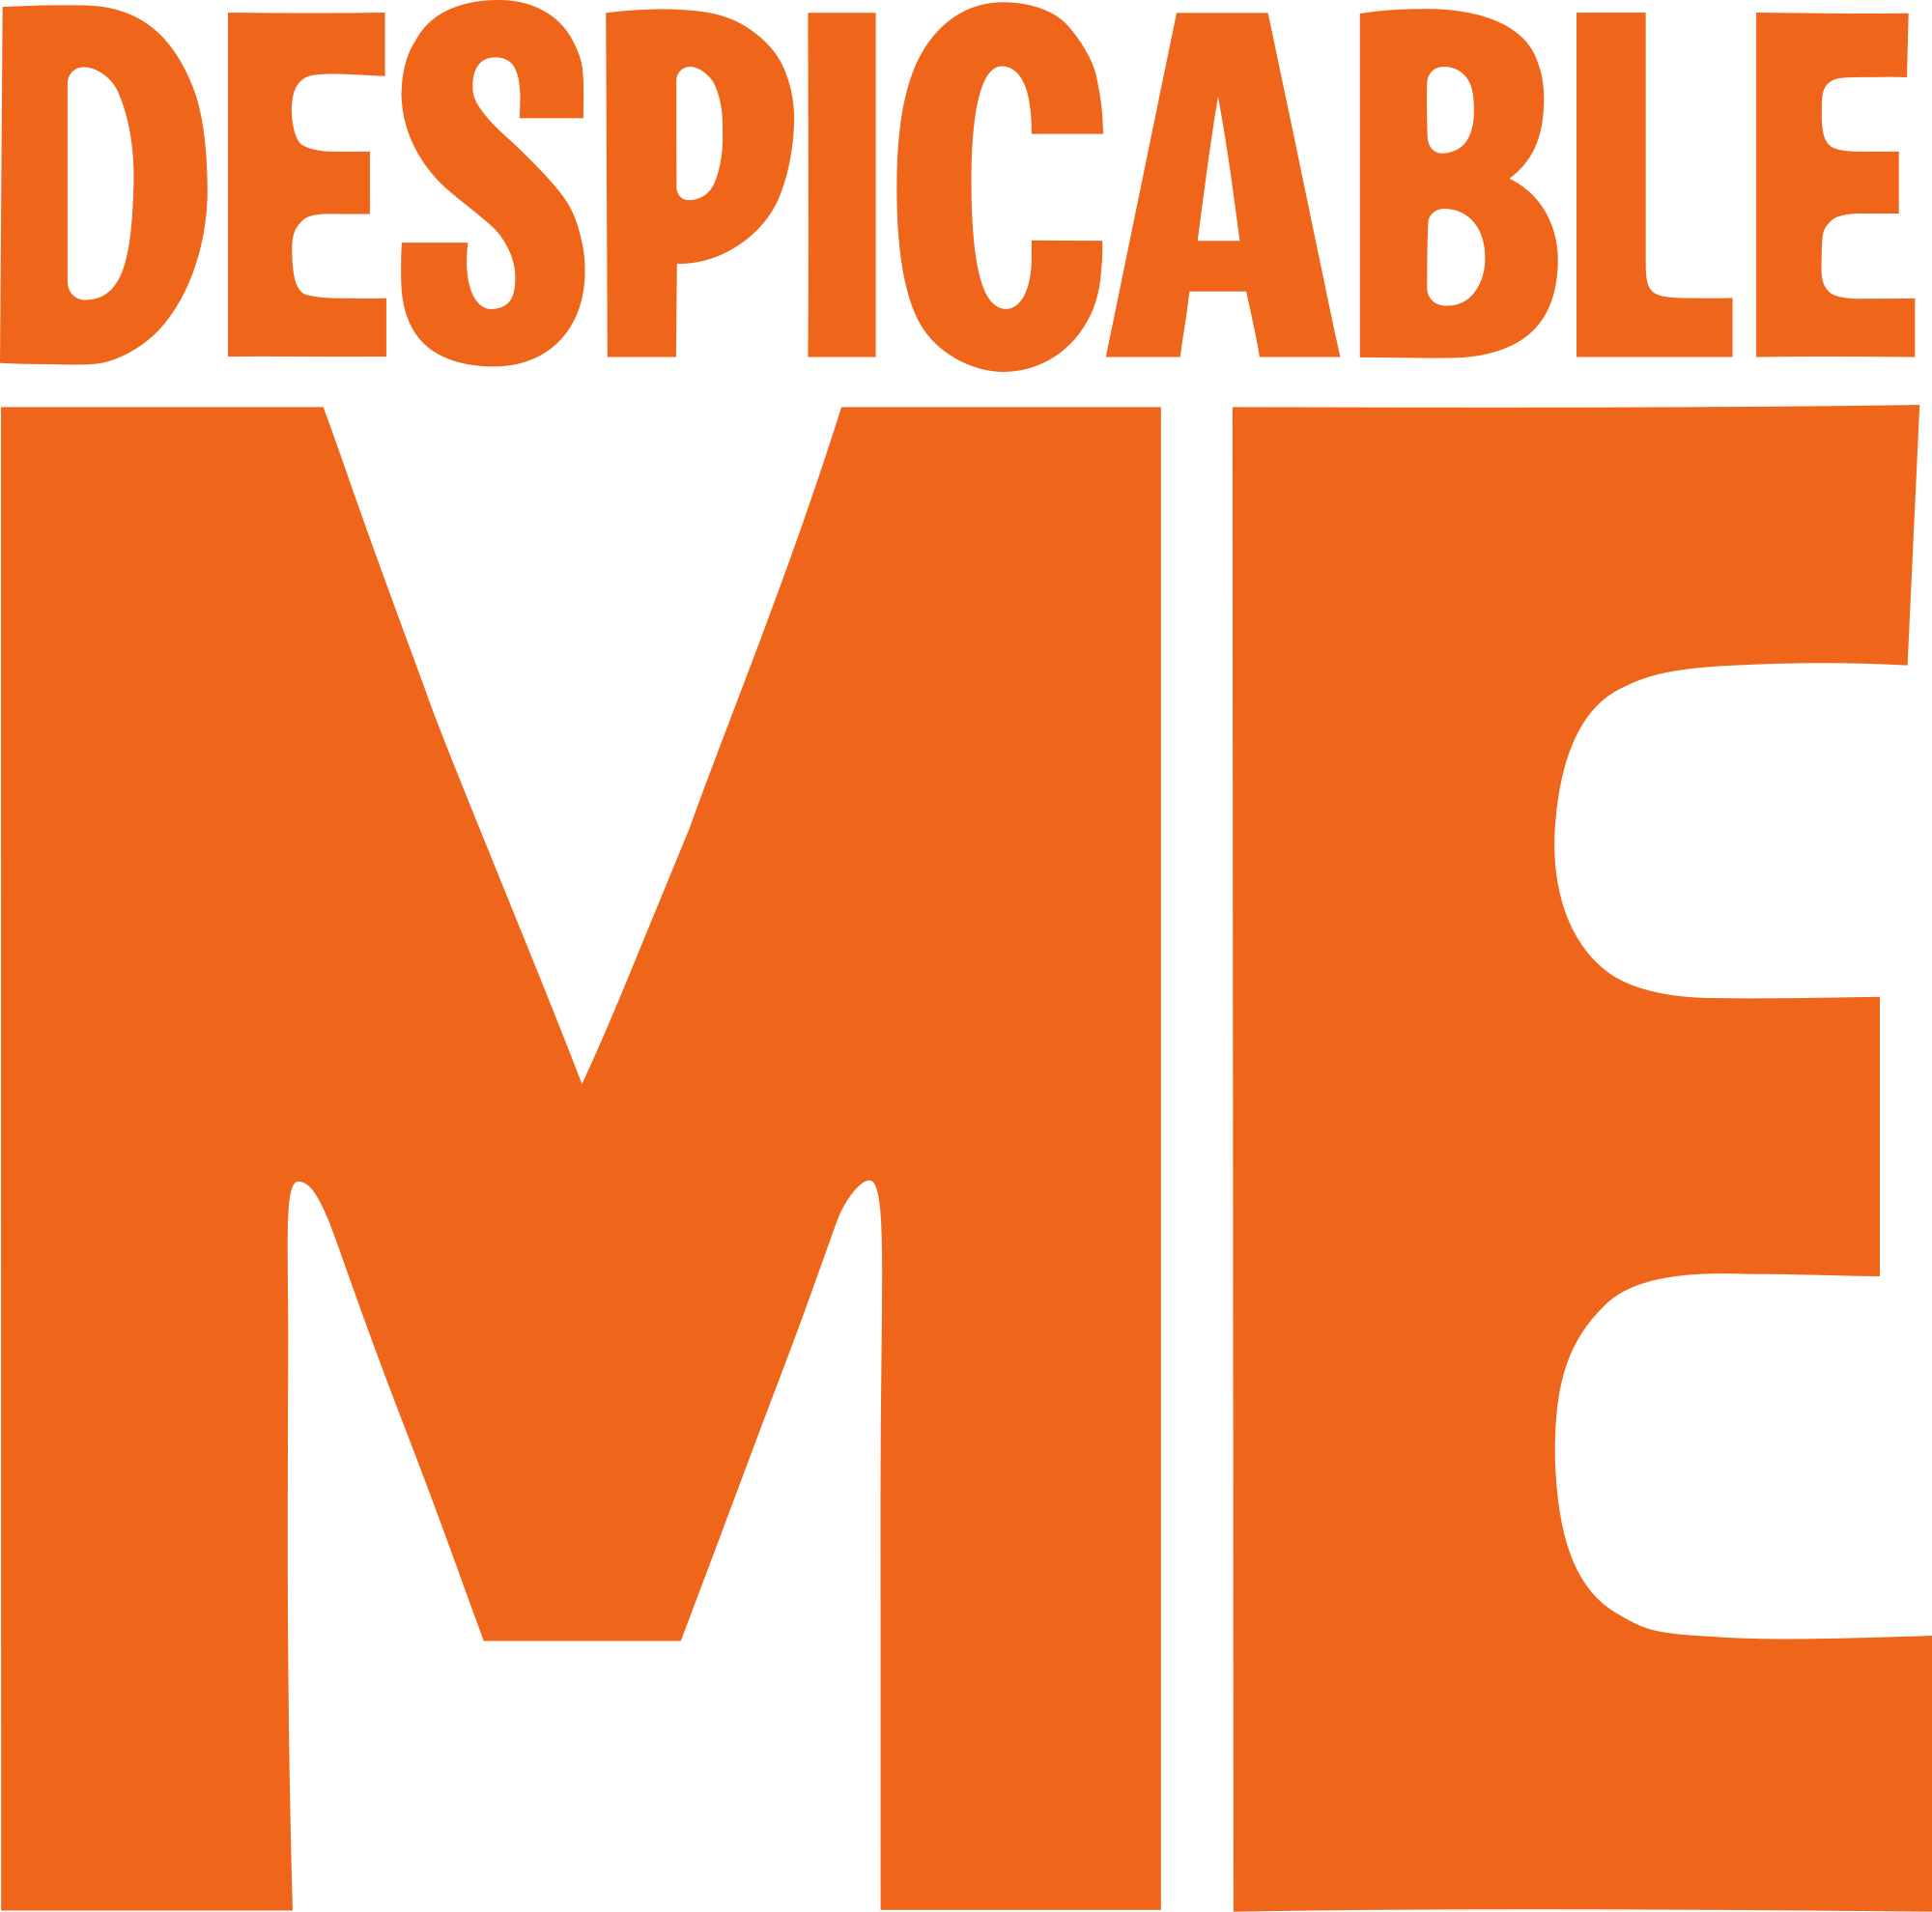 Despicable Me (franchise).